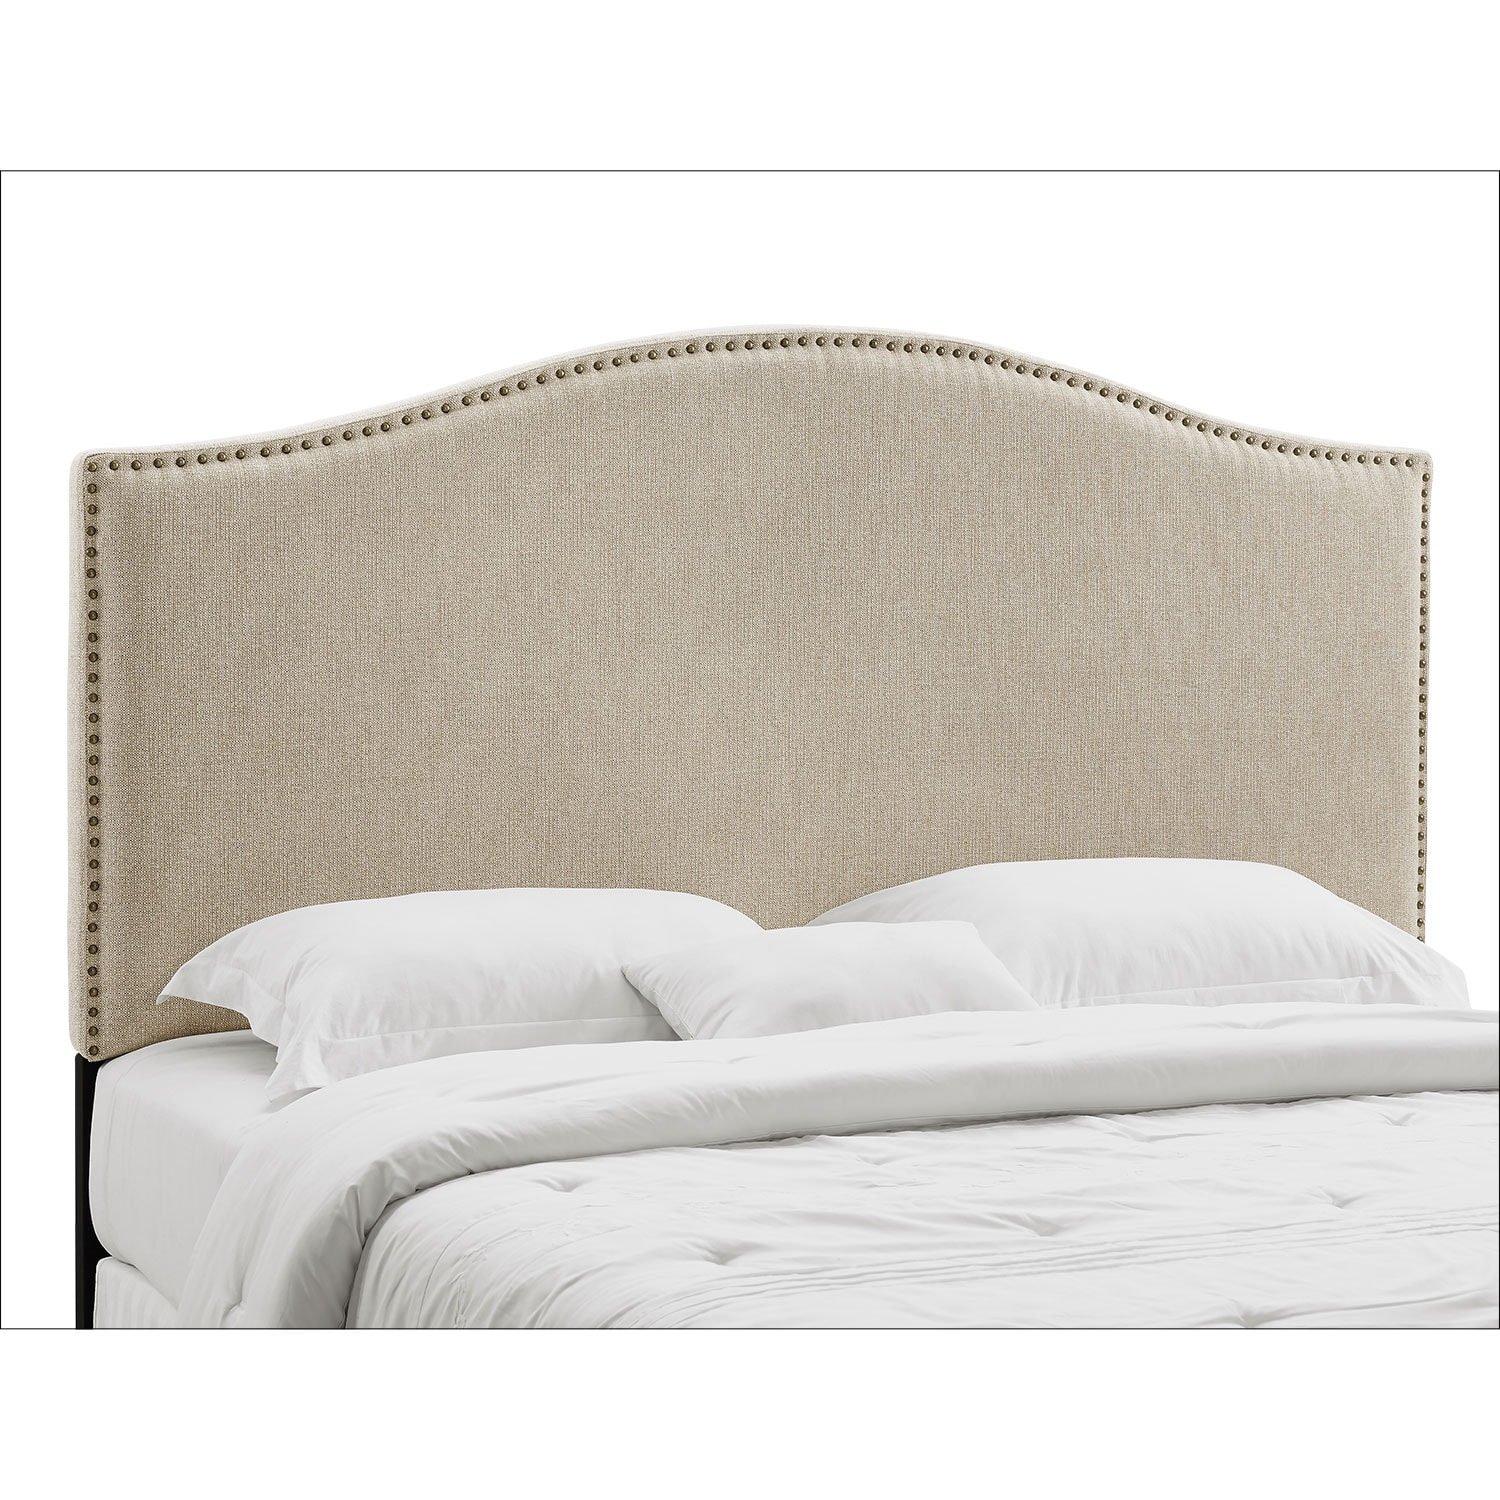 Wyatt king california king headboard value city furniture California king headboard